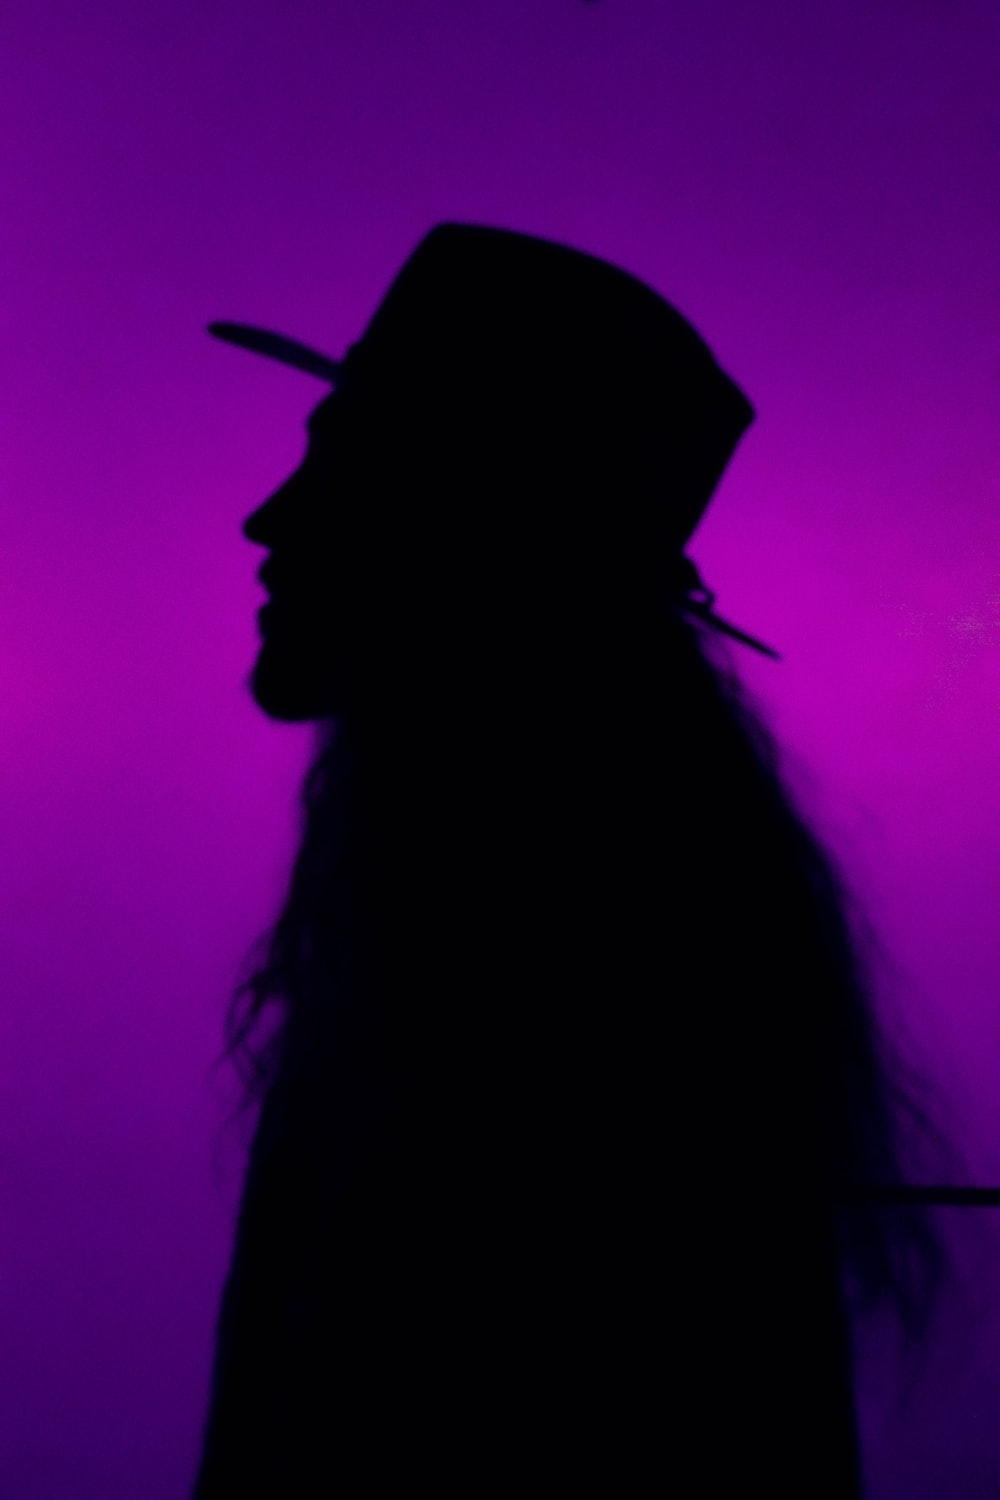 silhouette photography of person in hat